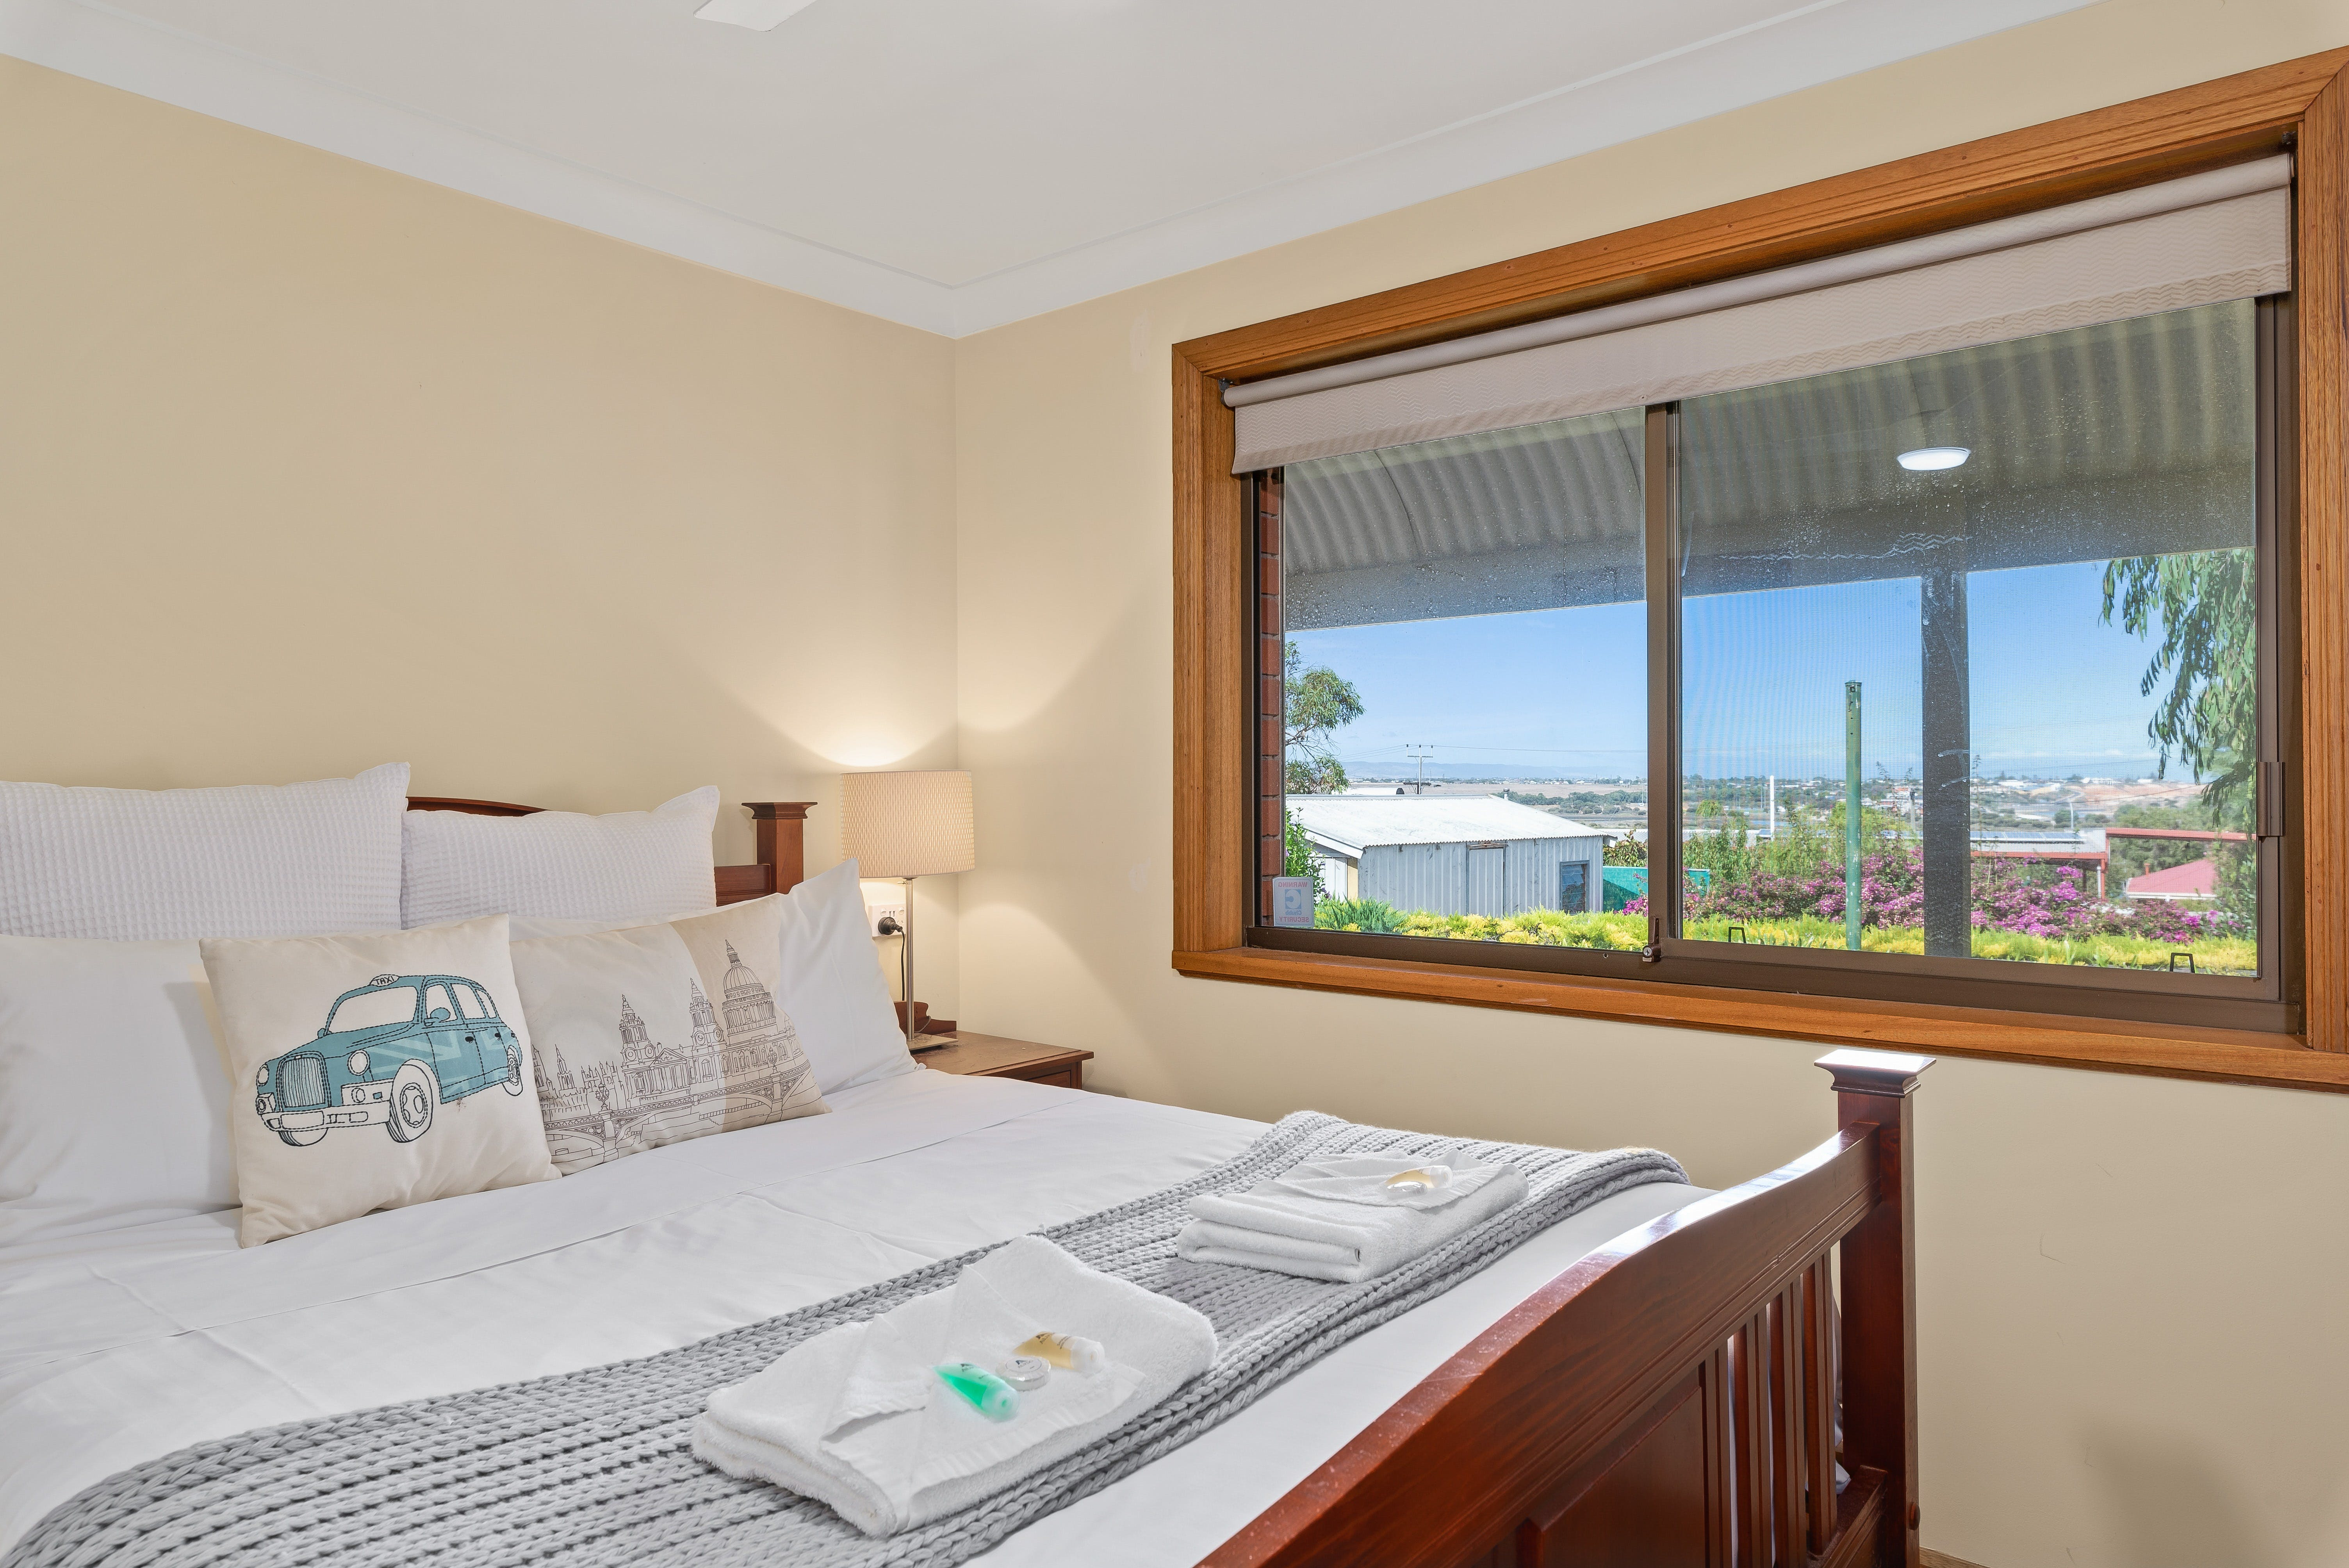 Century21 SouthCoast Reef  Vines Port Noarlunga - Kempsey Accommodation